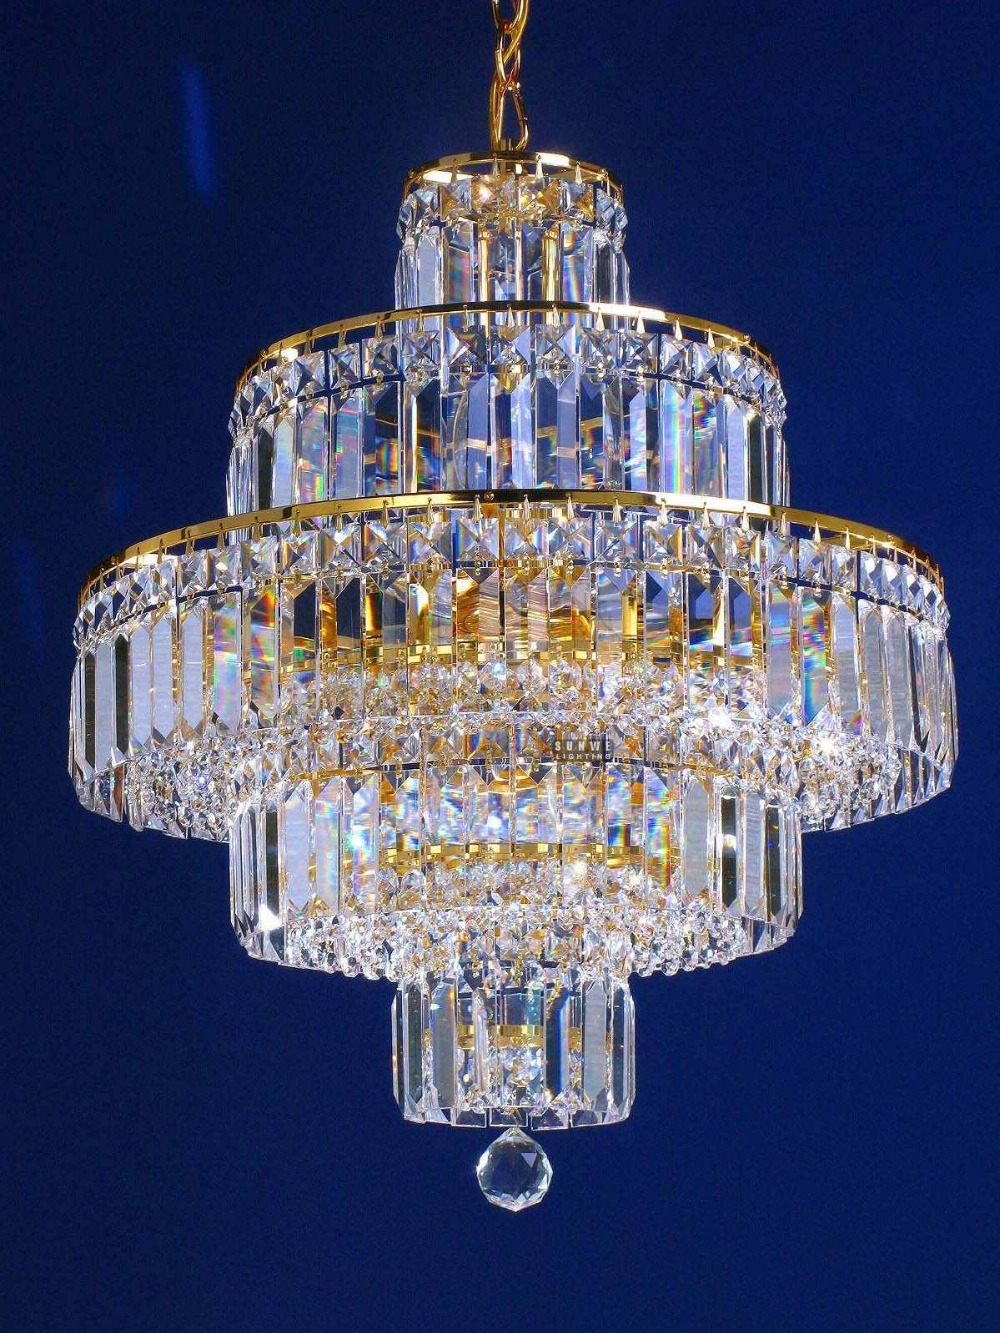 Small gold crystal chandelier light unique home chandelier lamp affordable crystal chandelier - Unique crystal chandeliers ...